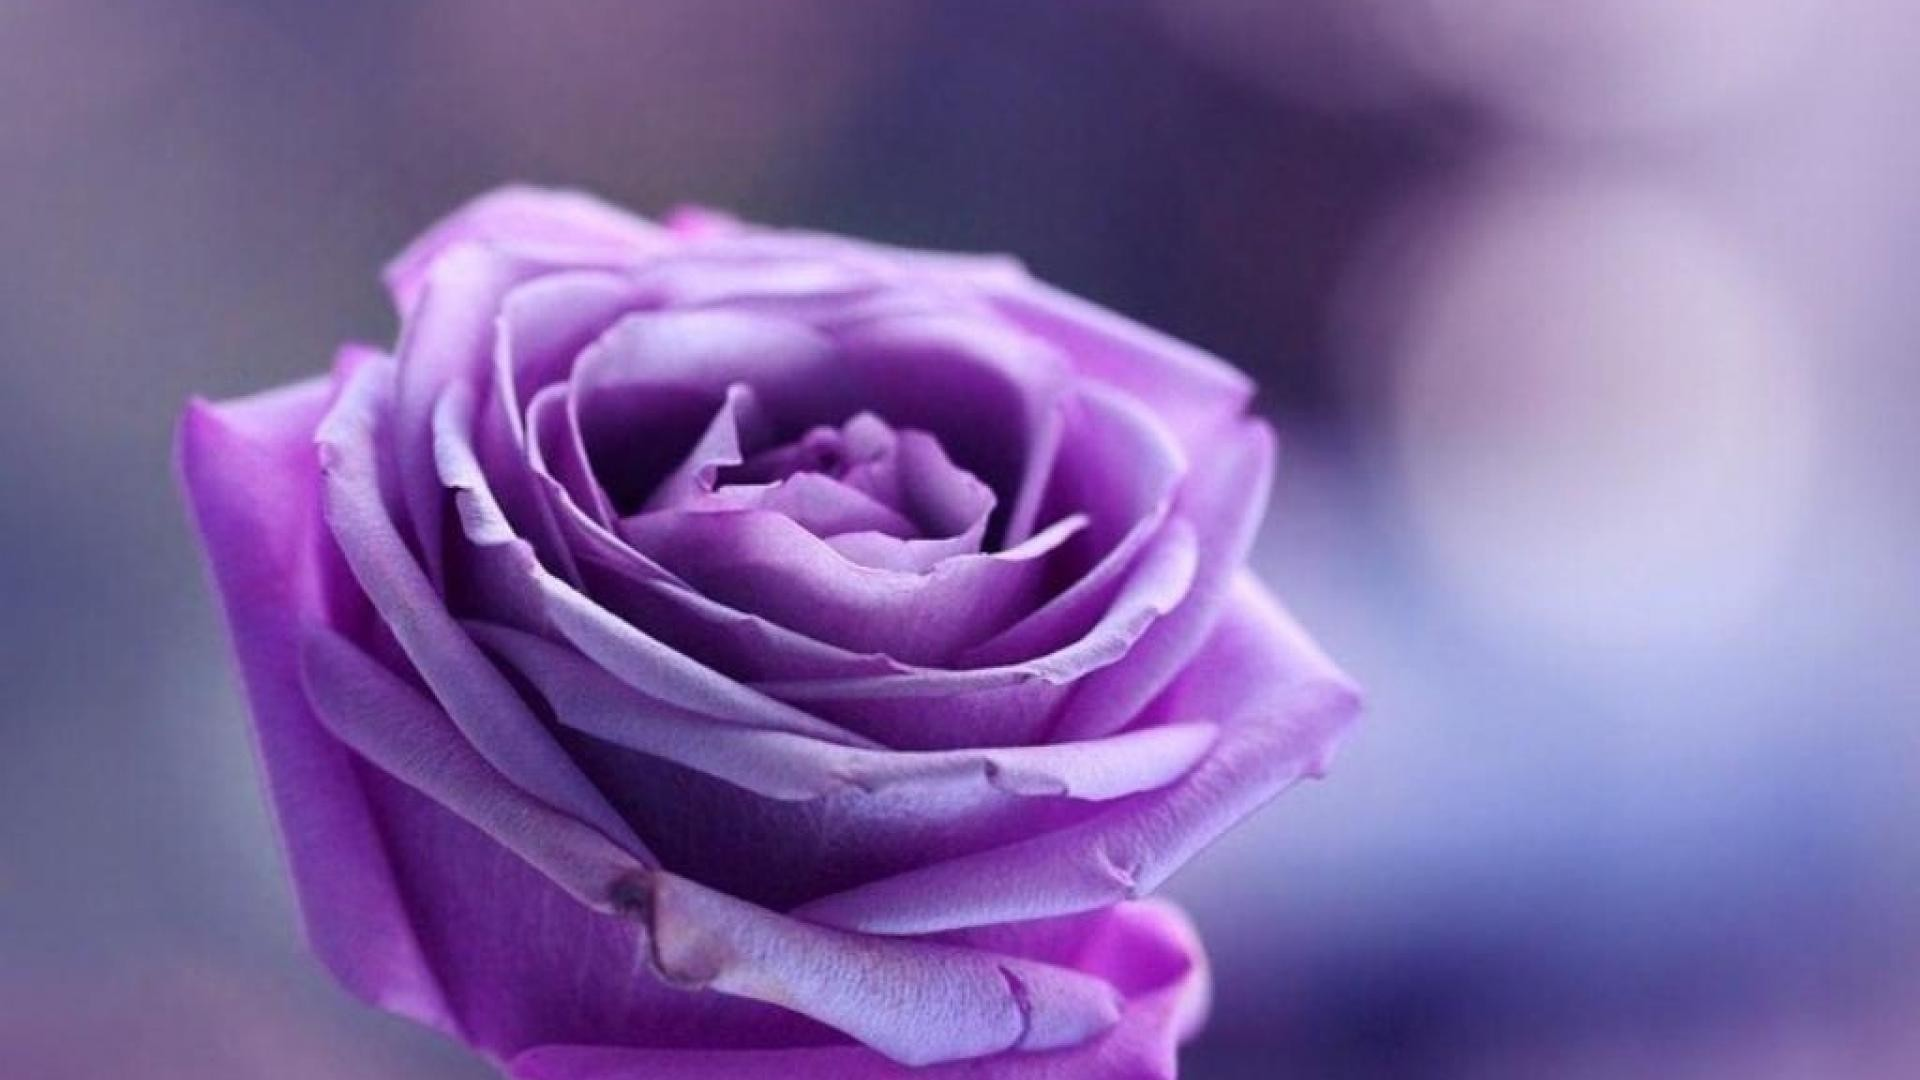 1920x1080 Purple rose on purple background wallpapers and images .